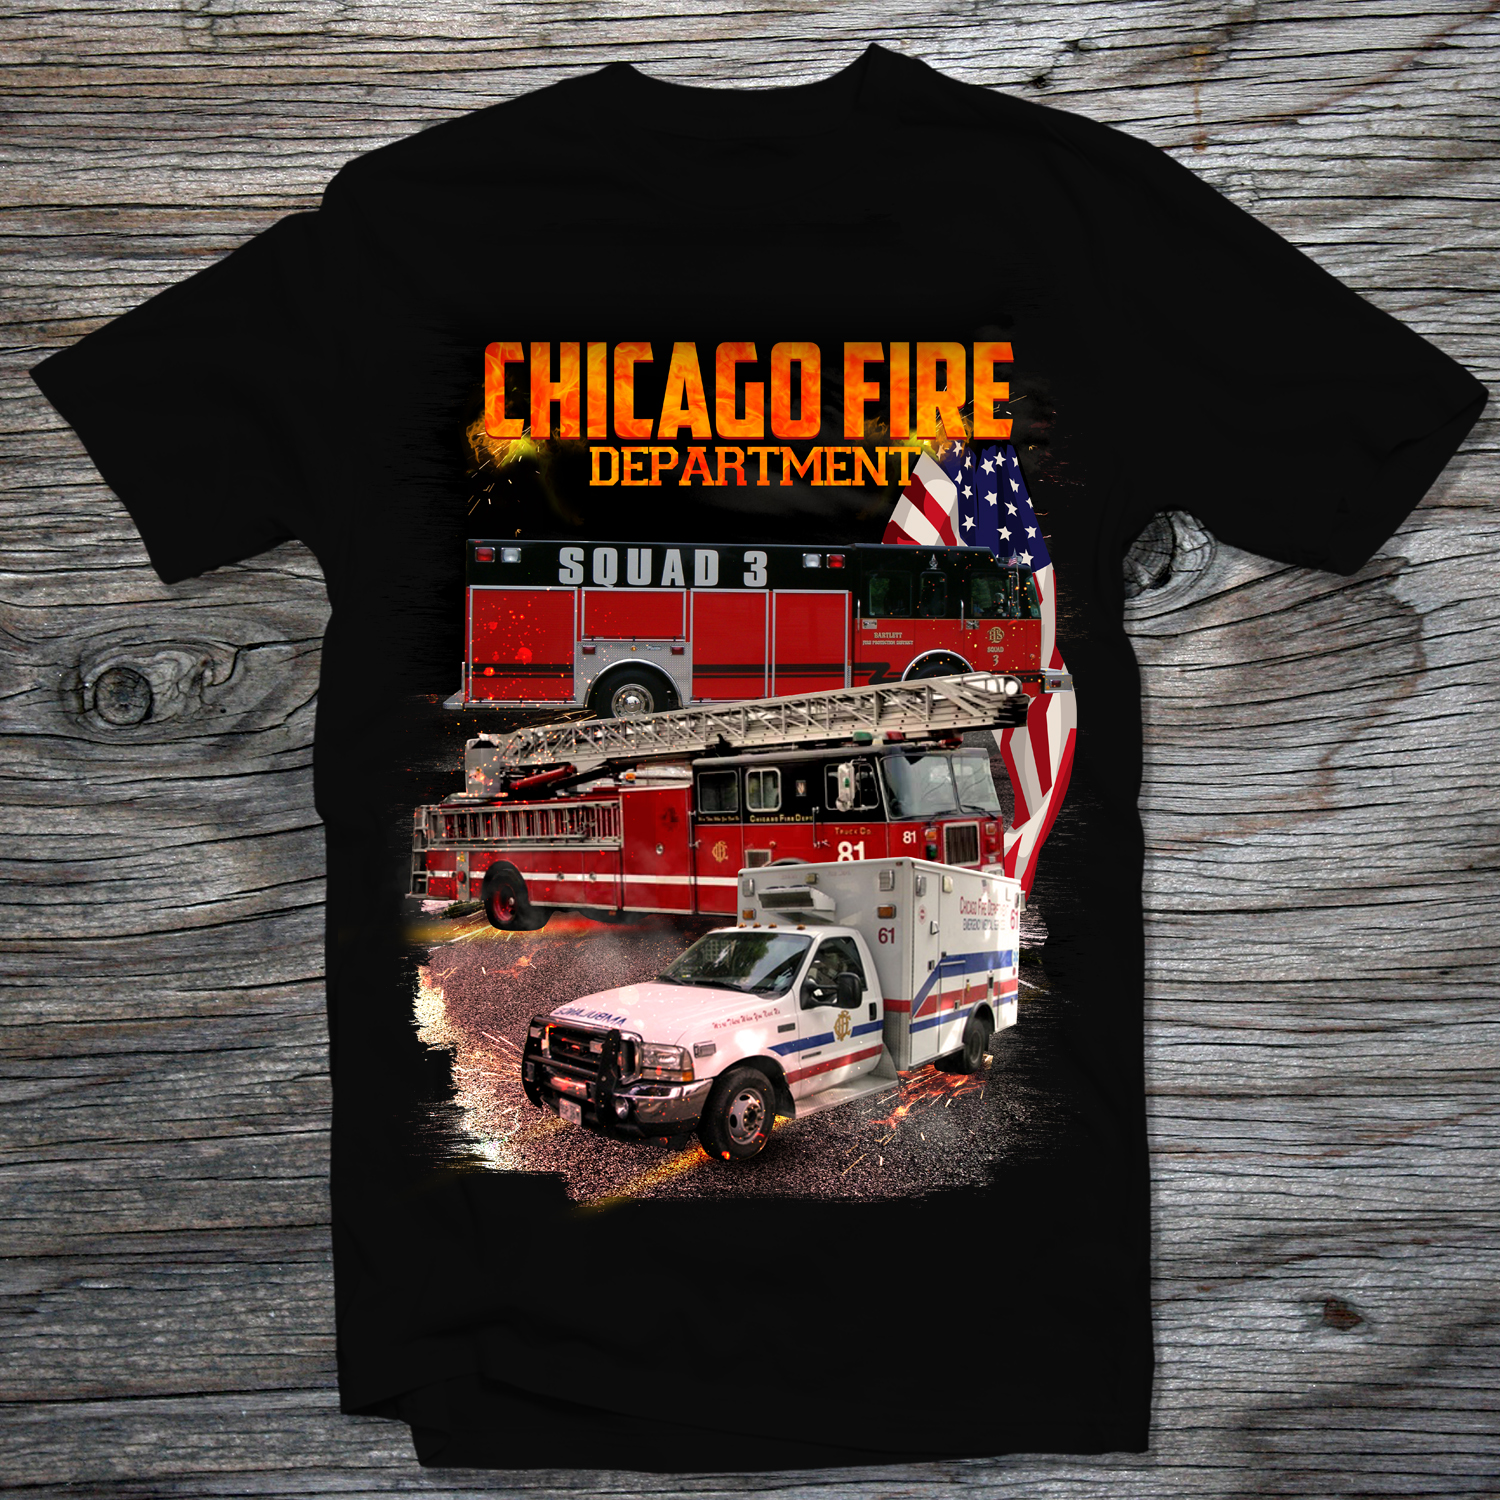 Professional Modern Fire Department T Shirt Design For Chicago